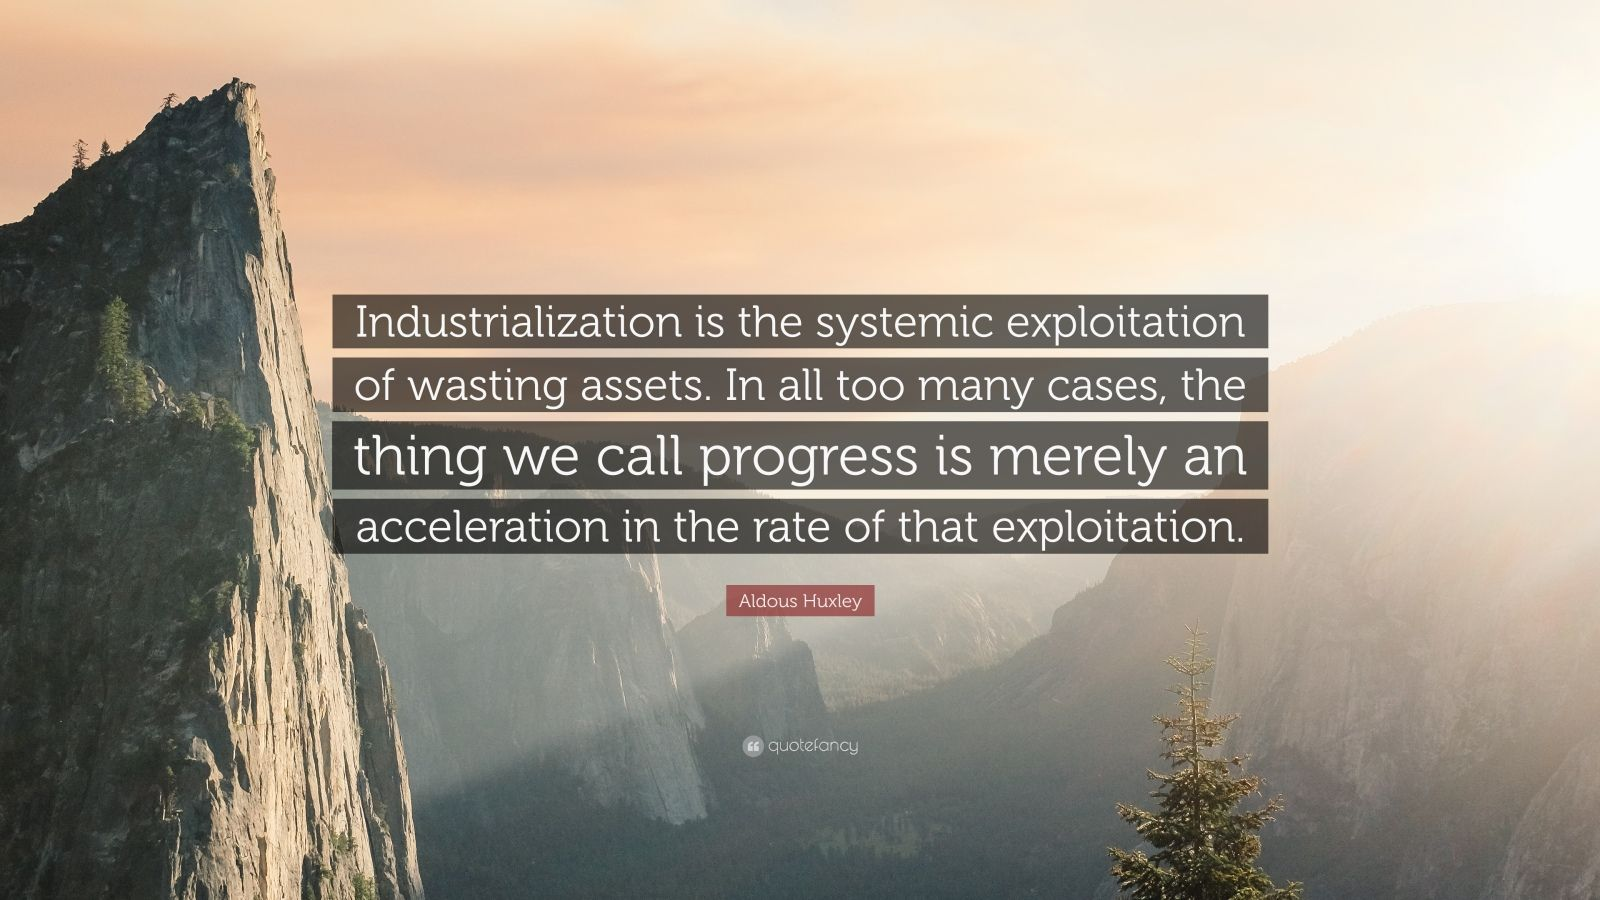 """Aldous Huxley Quote: """"Industrialization is the systemic exploitation of wasting assets. In all too many cases, the thing we call progress is merely an acceleration in the rate of that exploitation."""""""